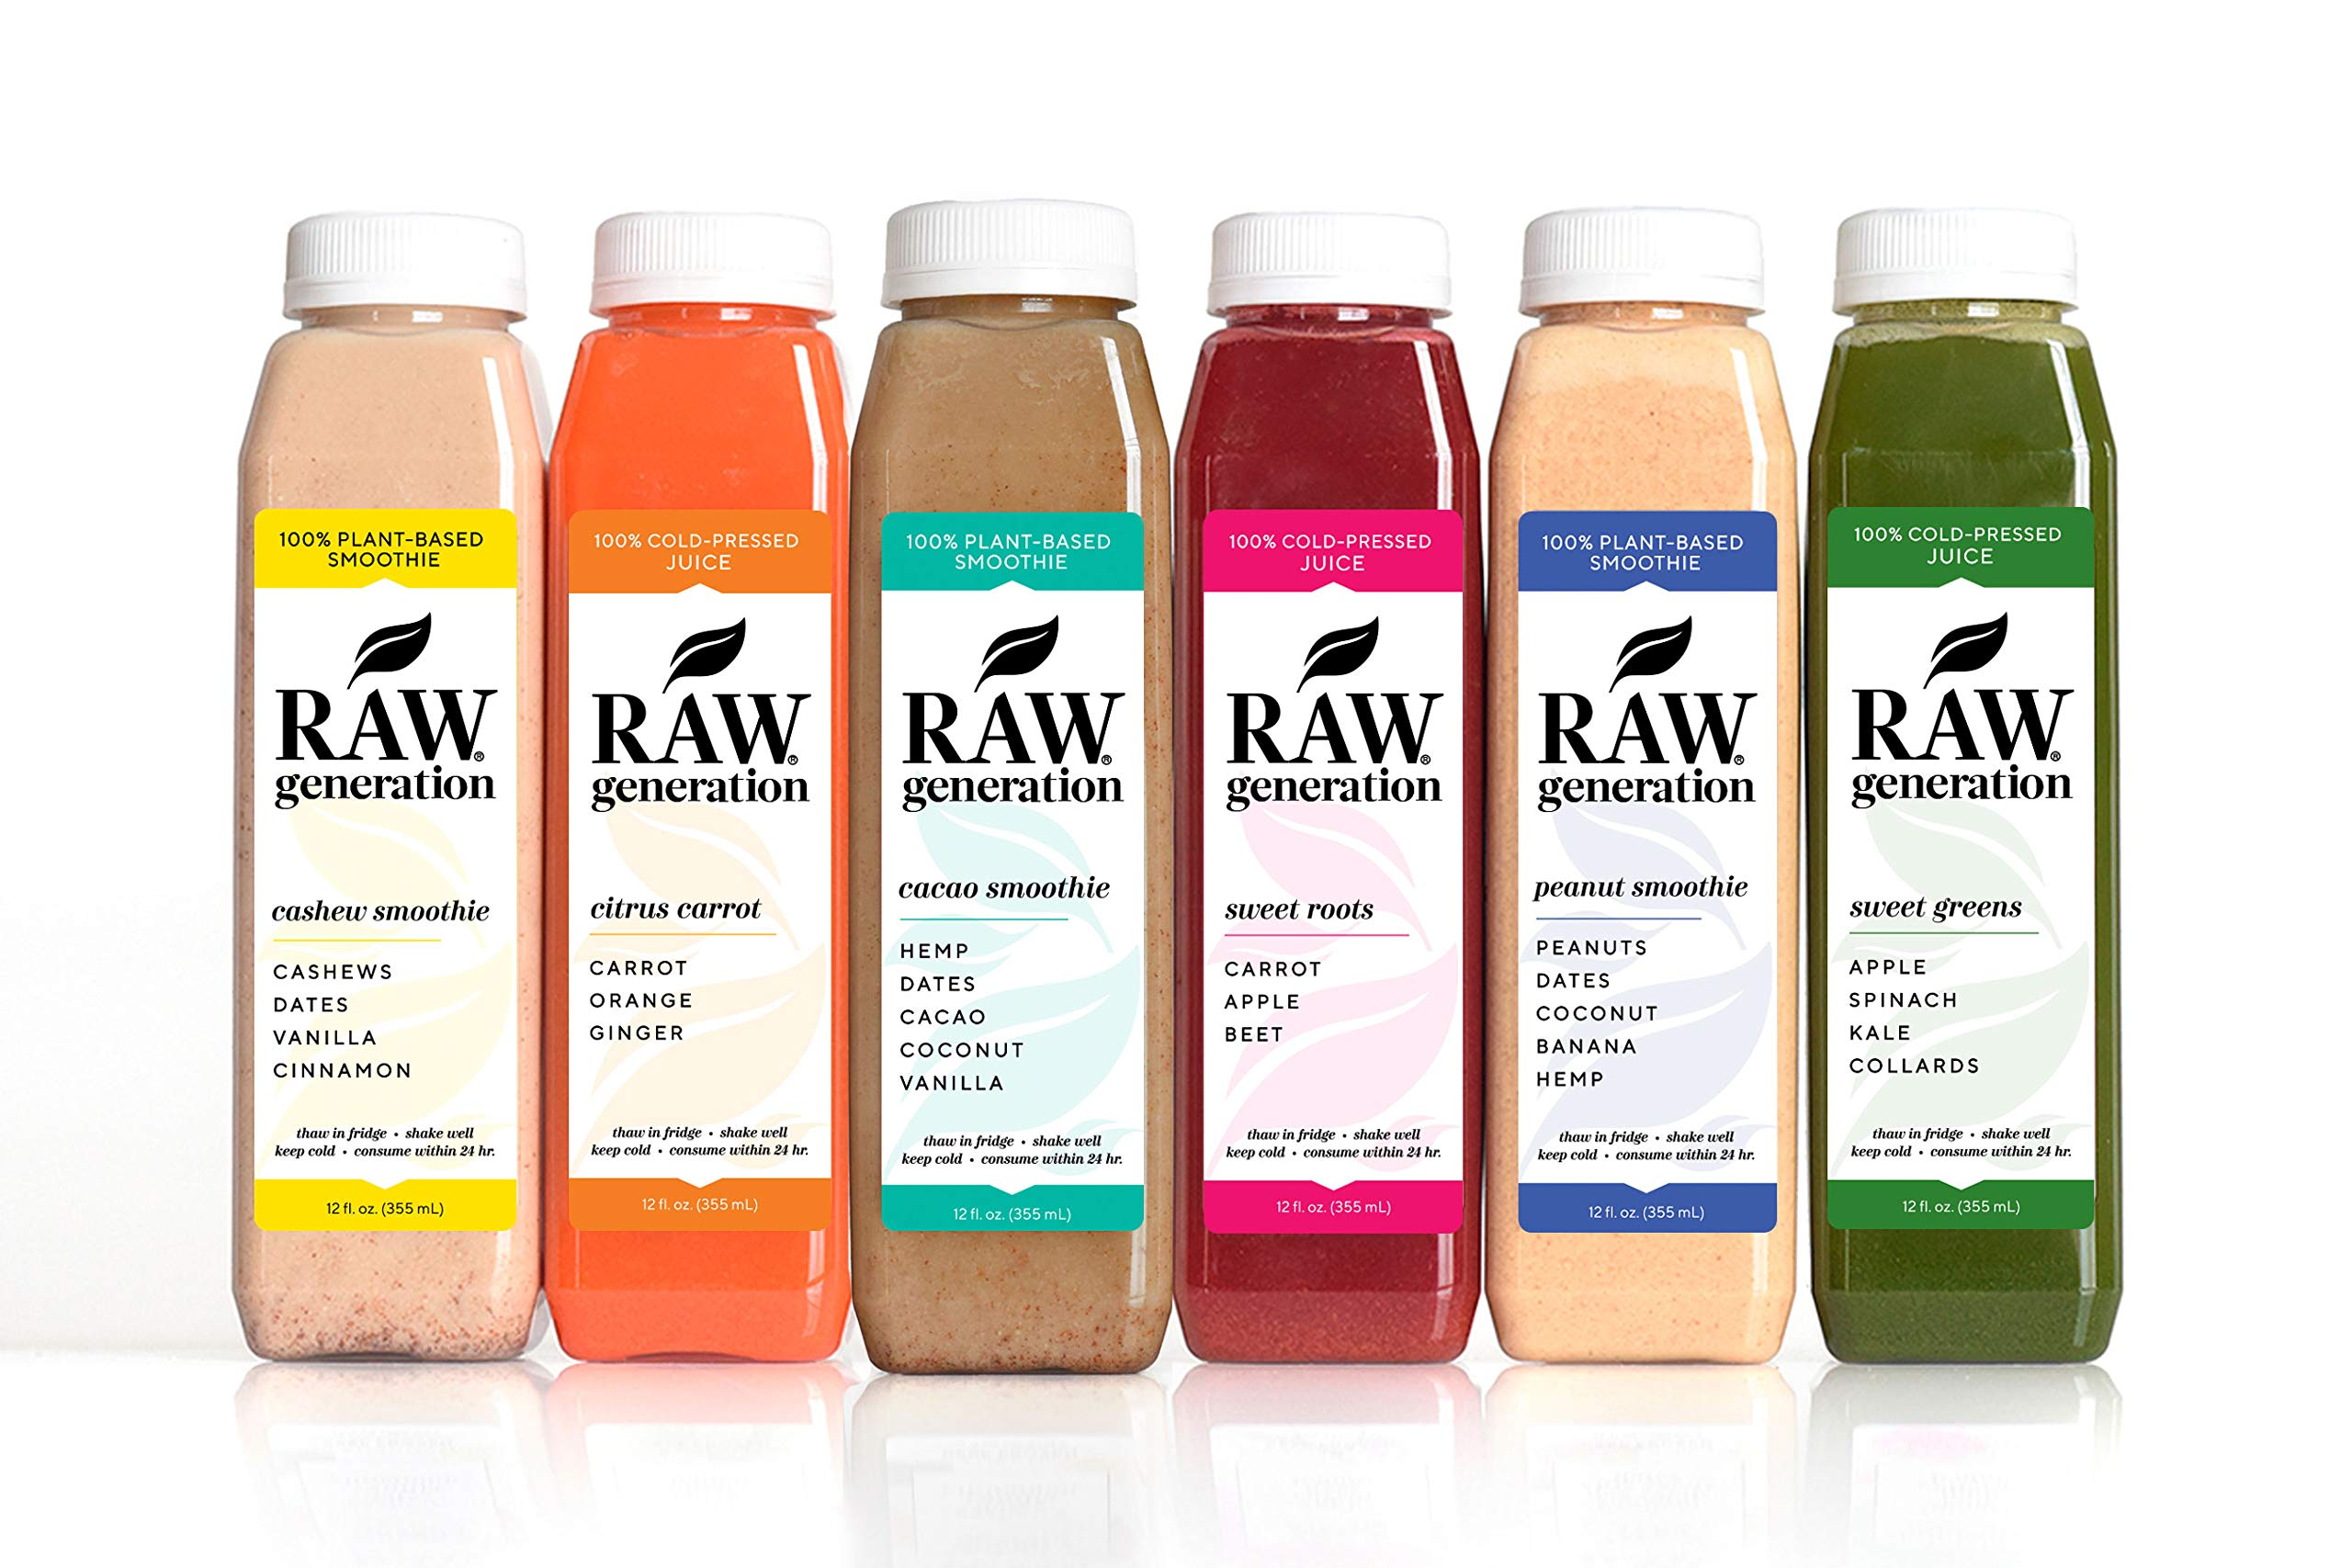 3-Day Protein Cleanse by Raw Generation® - High Protein Juice Cleanse with Dairy and Soy-Free Protein Smoothies/Lose Weight Quickly While Energizing Your Workouts/Jumpstart a Healthier Diet by RAW generation